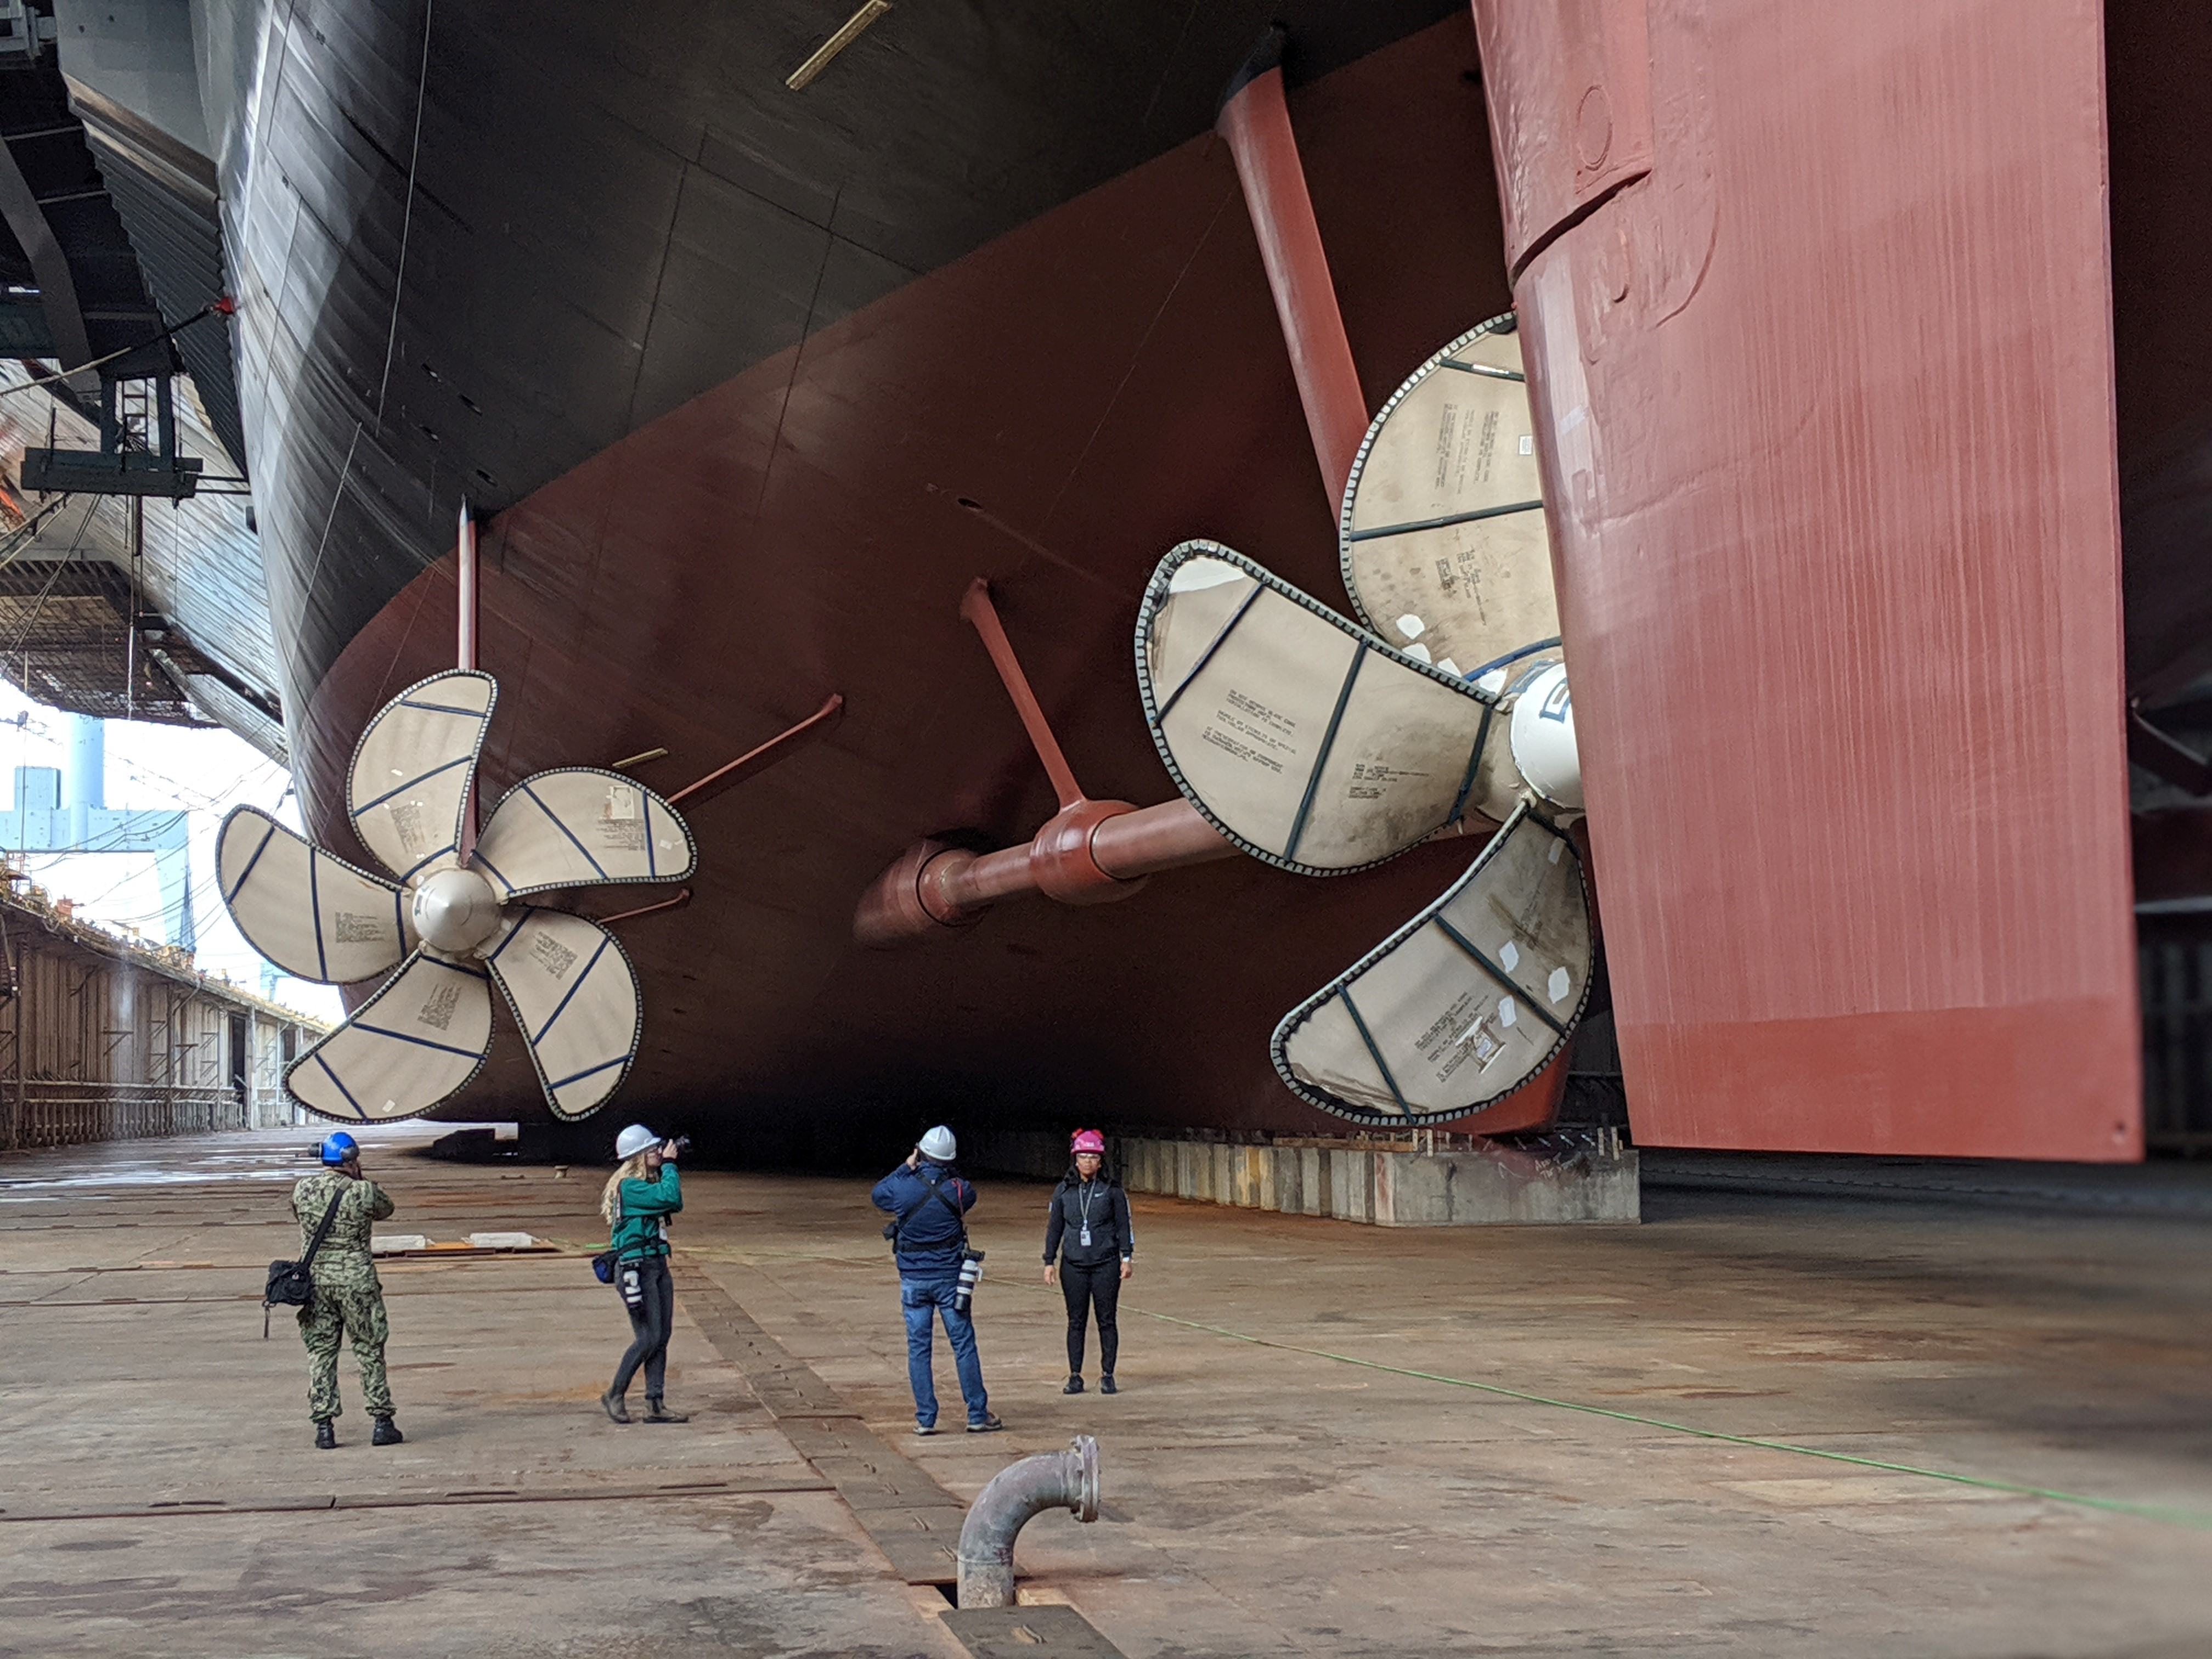 The director of the White House's Office of Trade and Manufacturing Policy says America's shipbuilding industry will require a large-scale overhaul and new strategy before it can churn out the ships the country urgently needs. (David B. Larter/Staff)